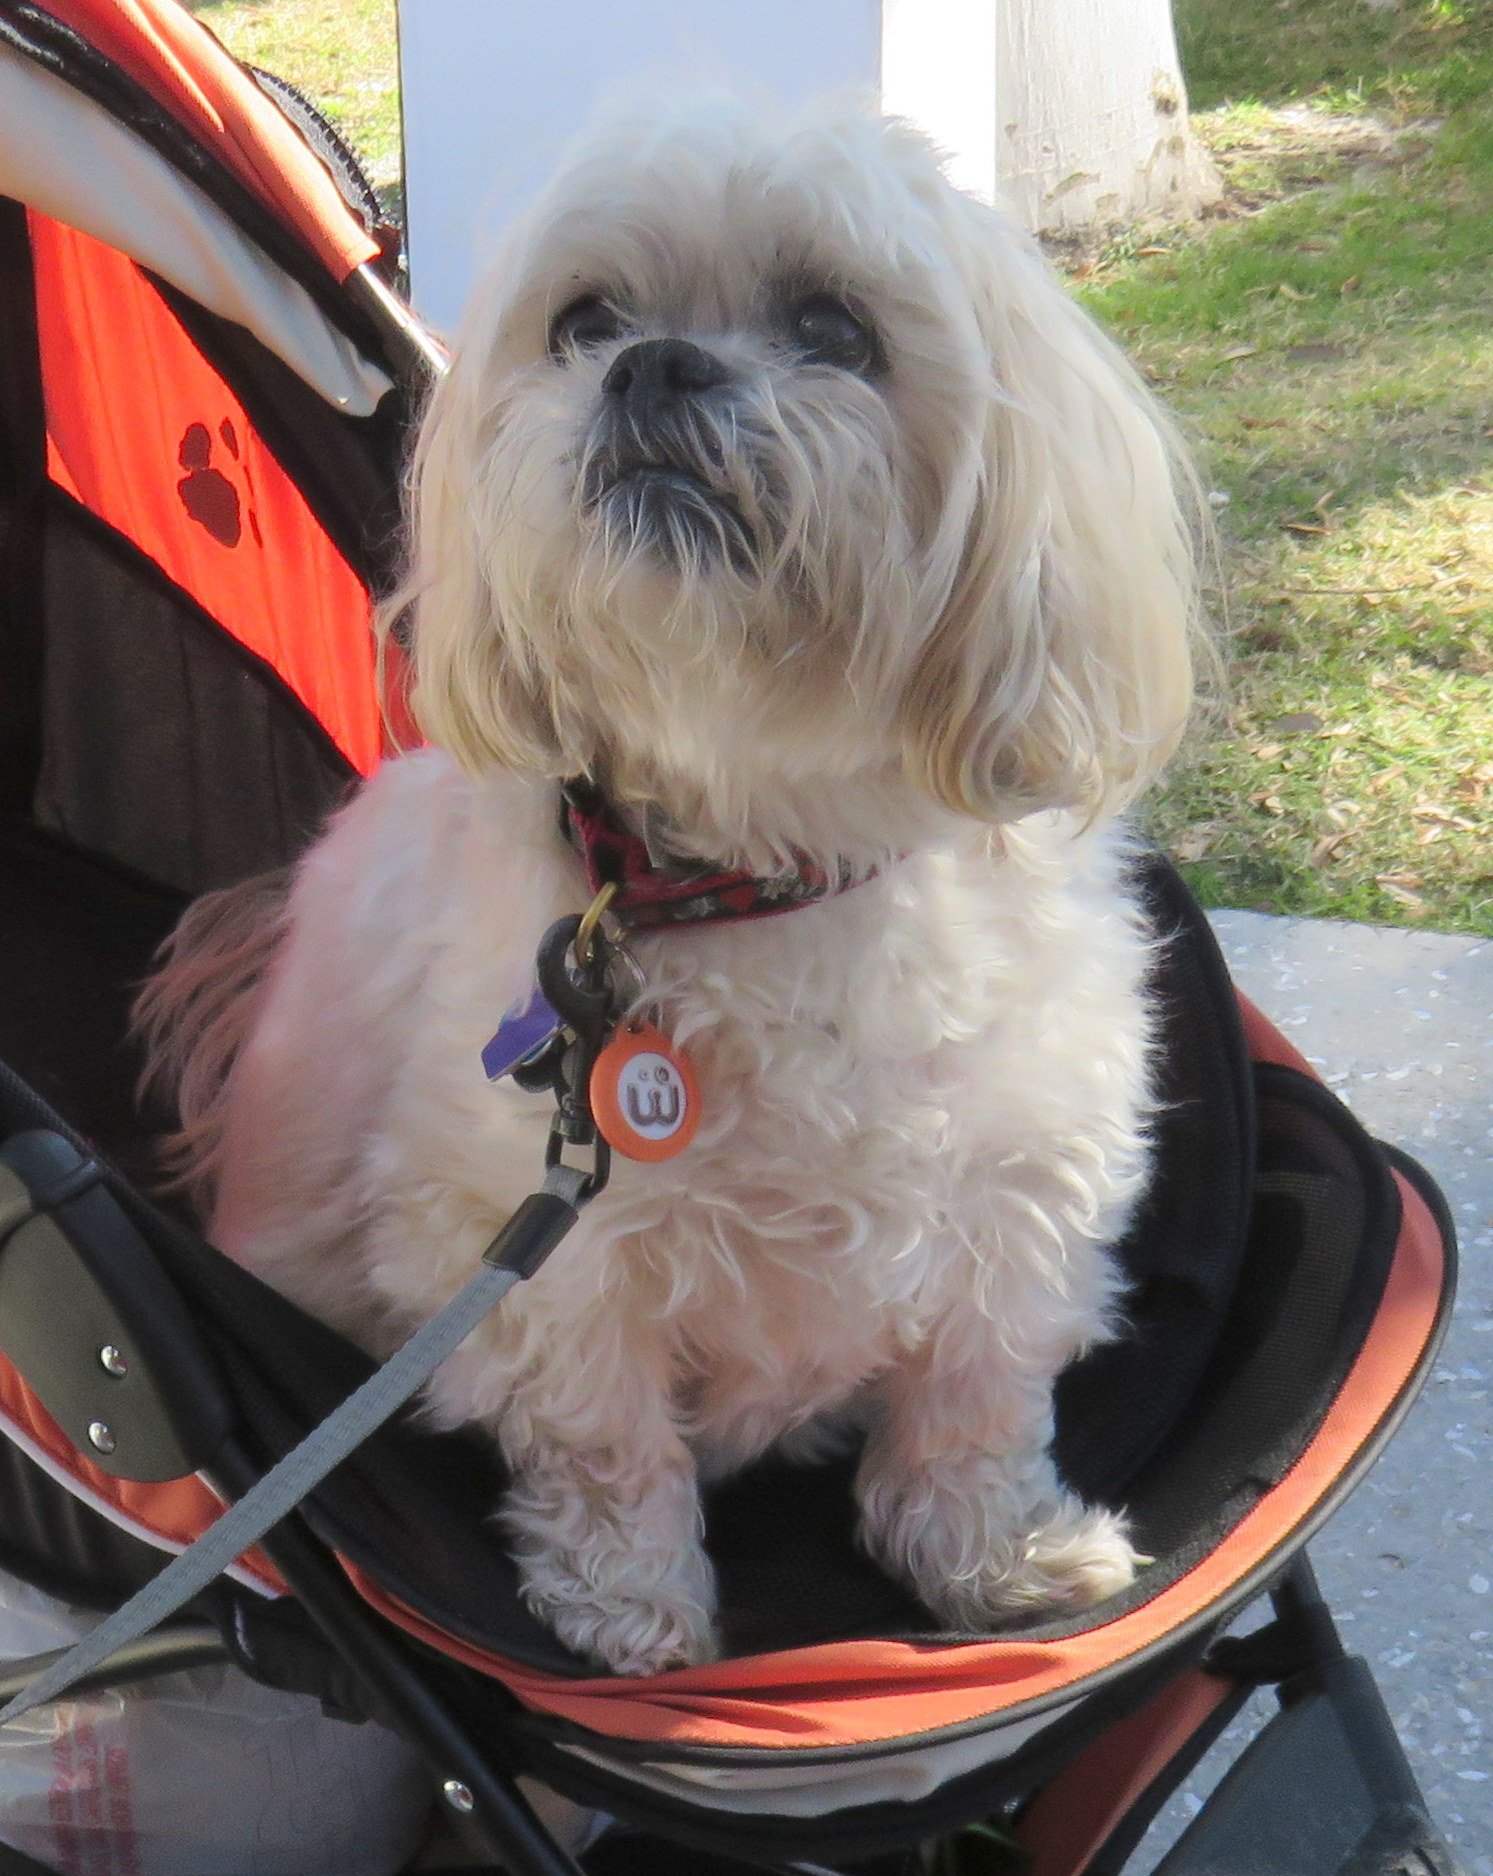 Casey the Lhasa Apso